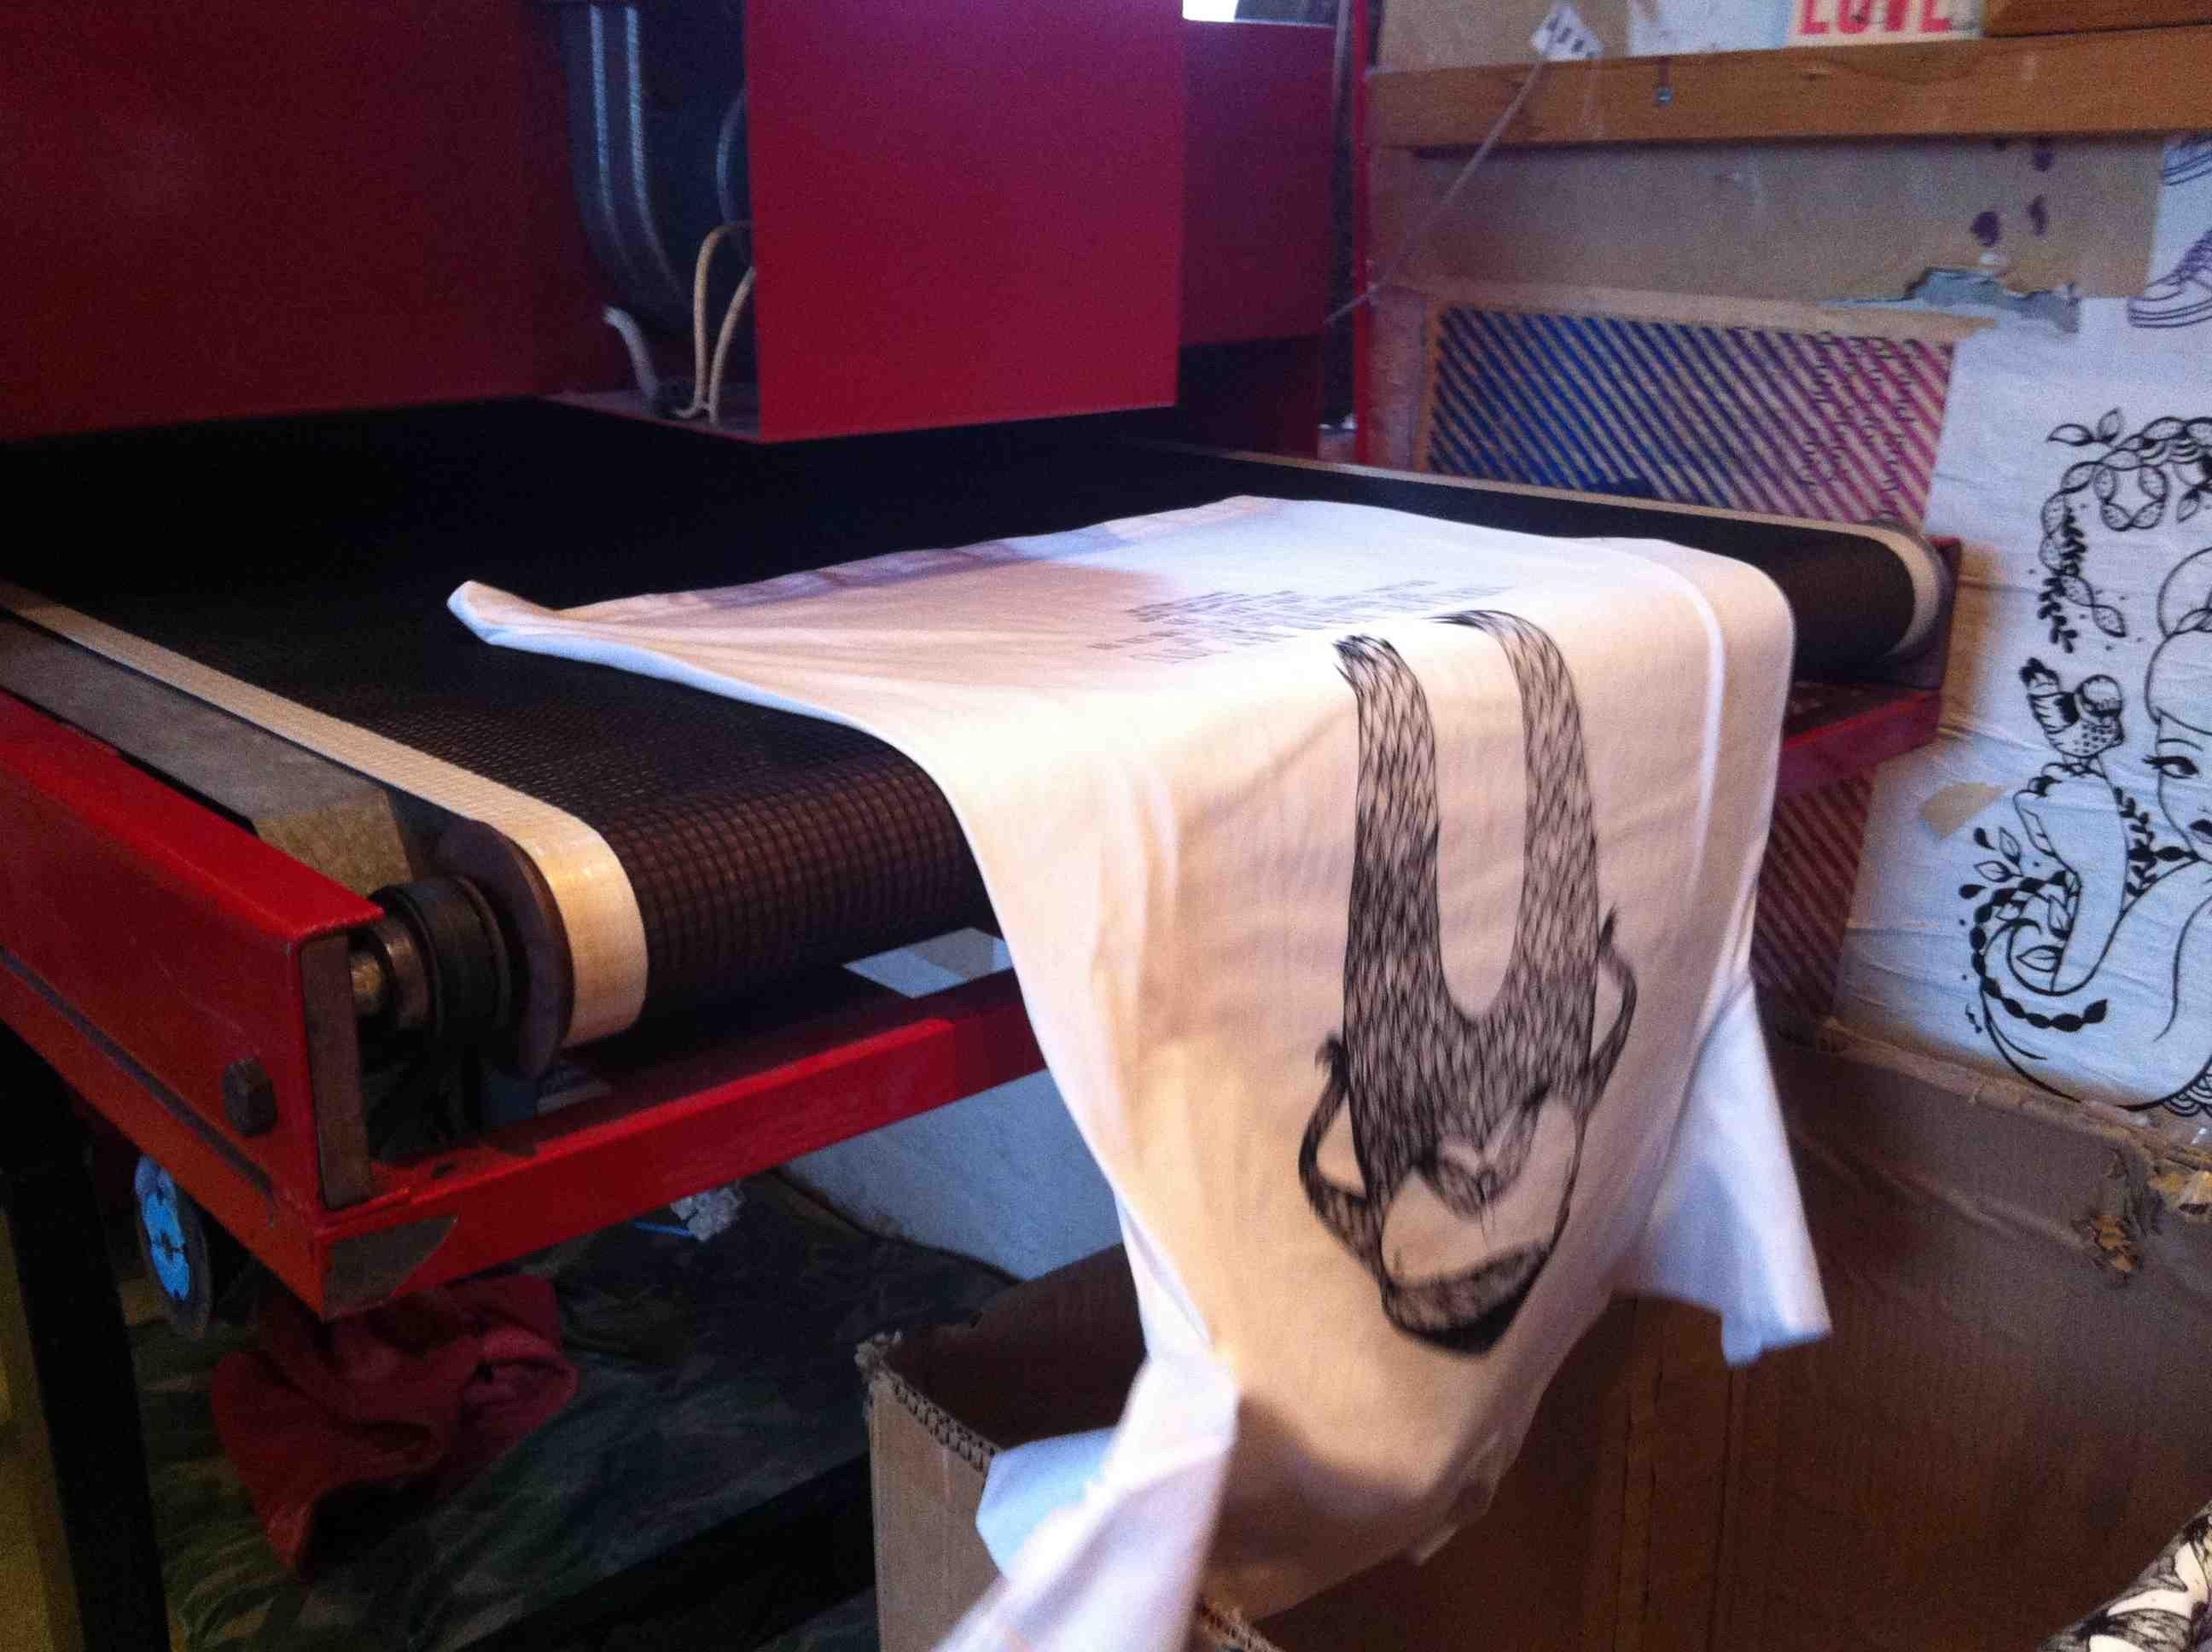 Yorkshire Beard Day 2013 T-shirt printing out of the dryer | Artwork created by David Litchfield http://davidlitchfieldillustration.com